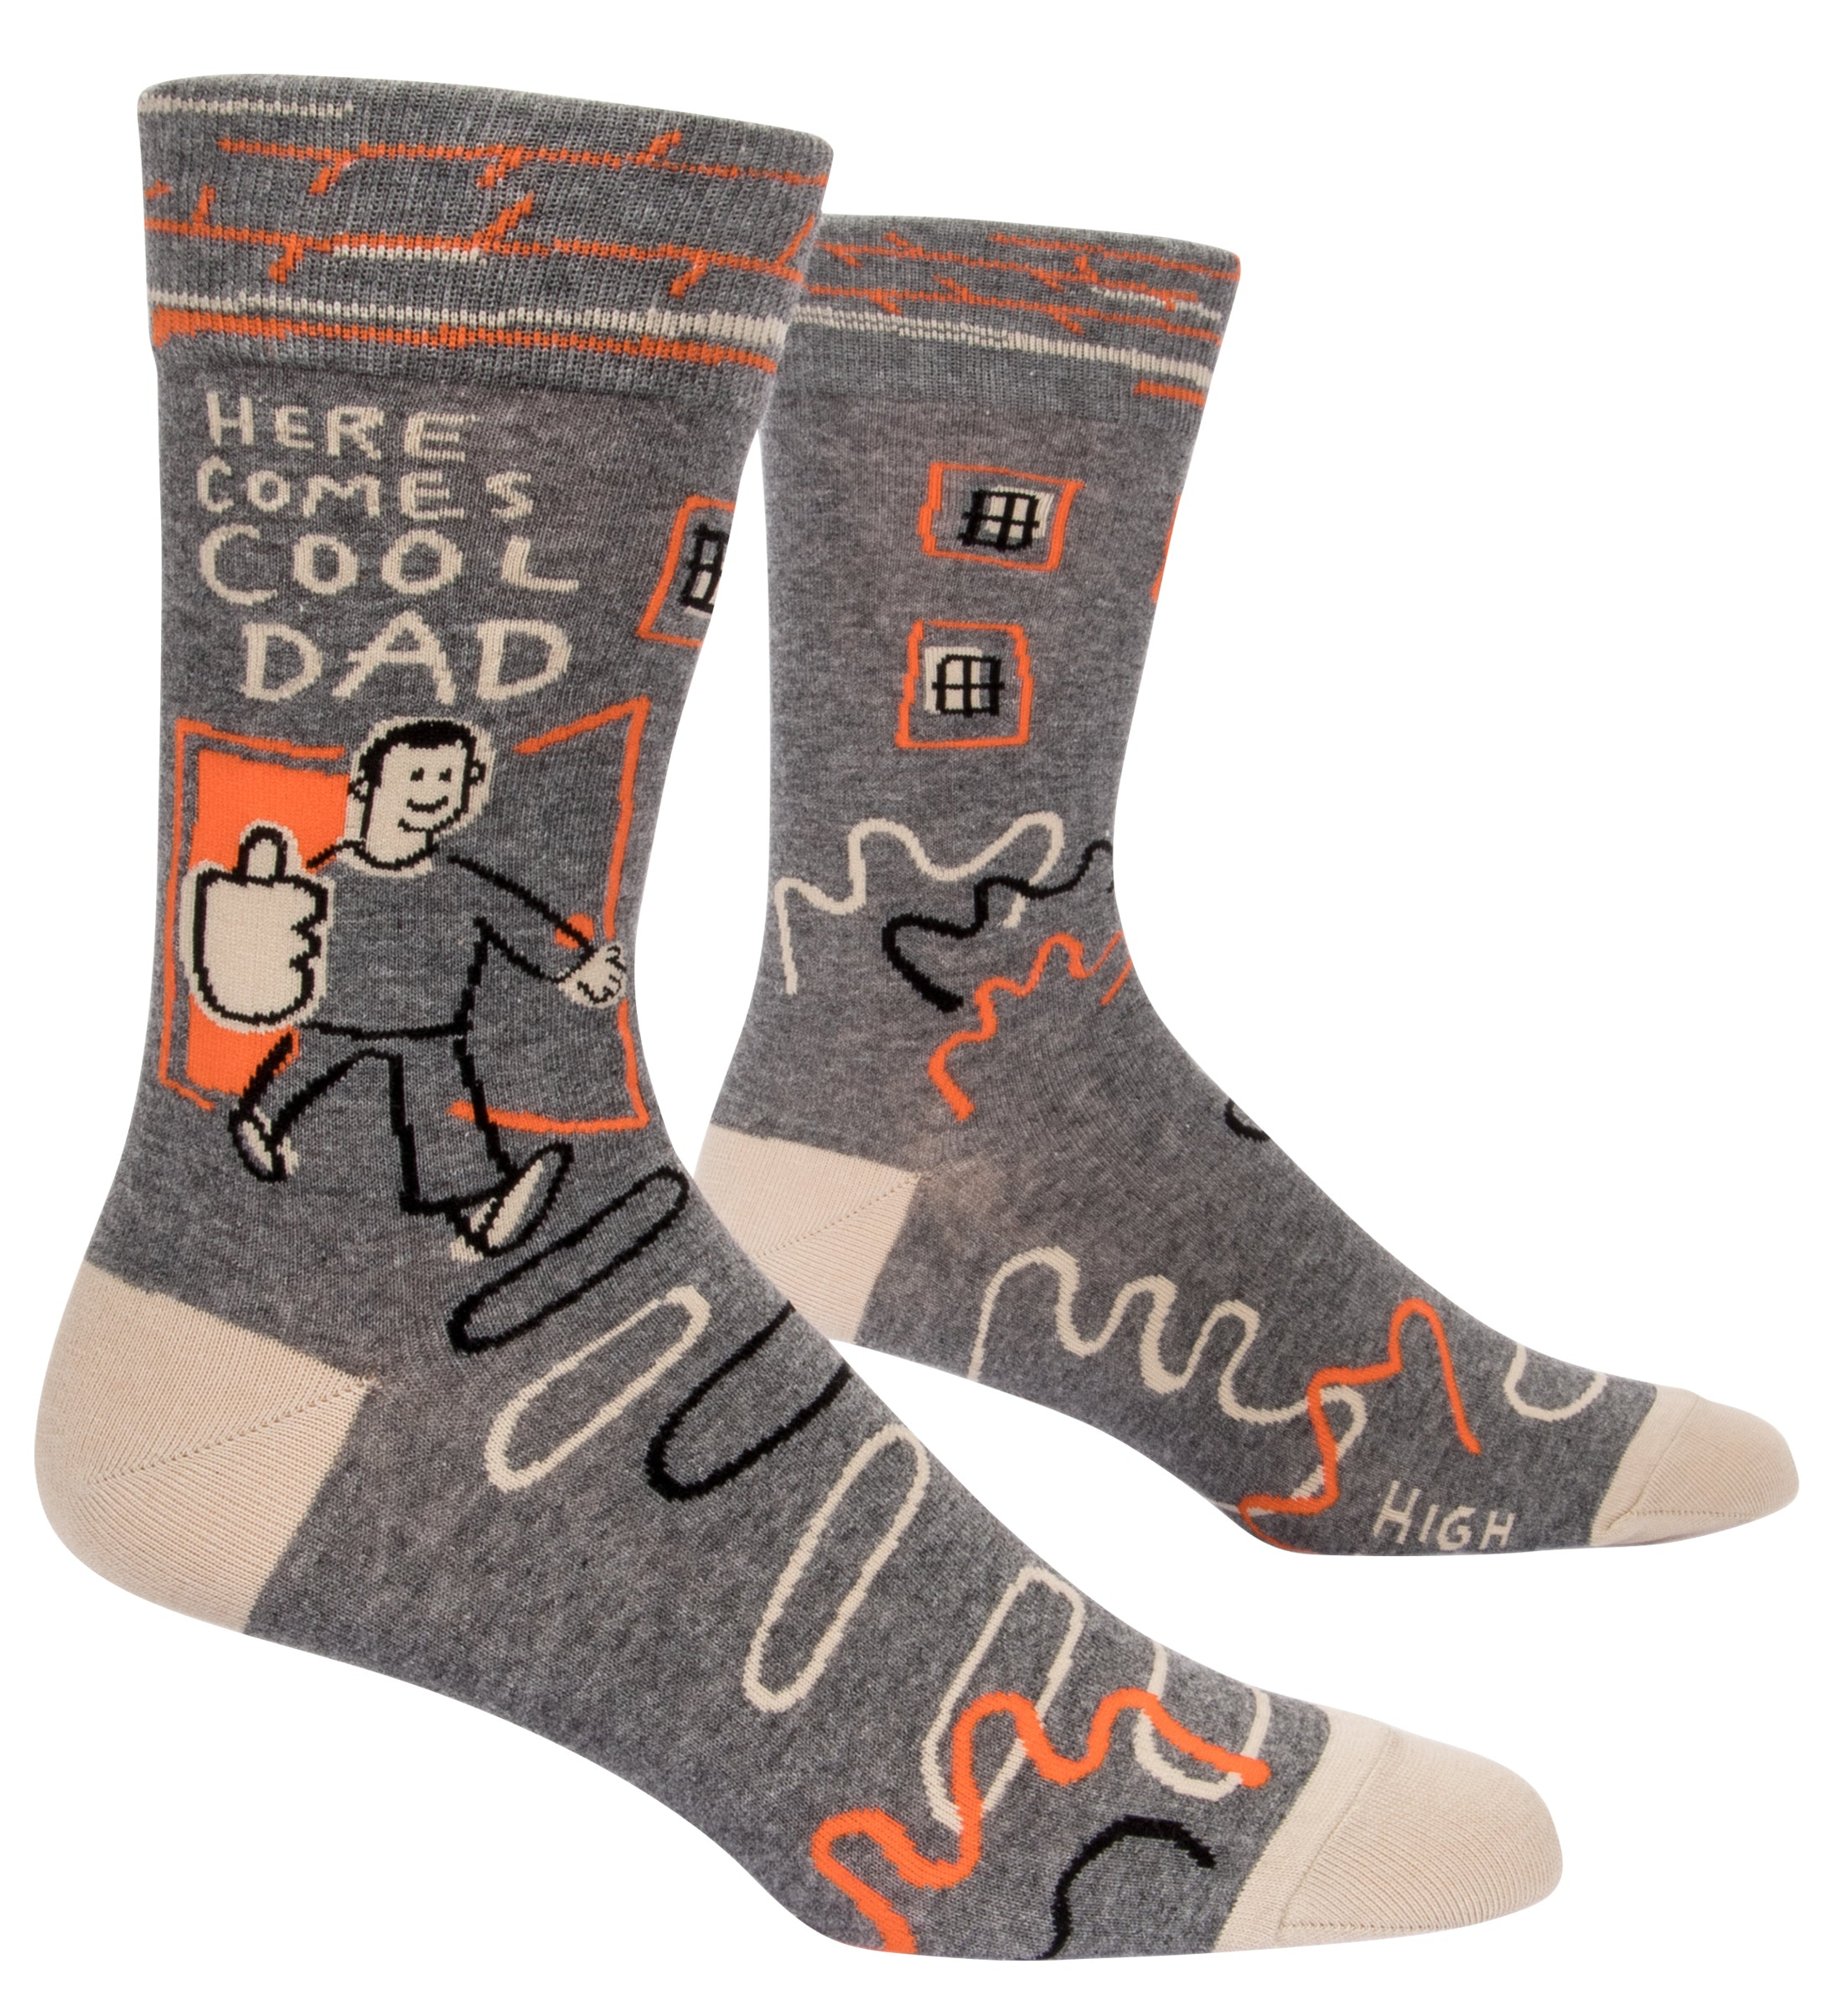 Mens Socks | Cool Dad